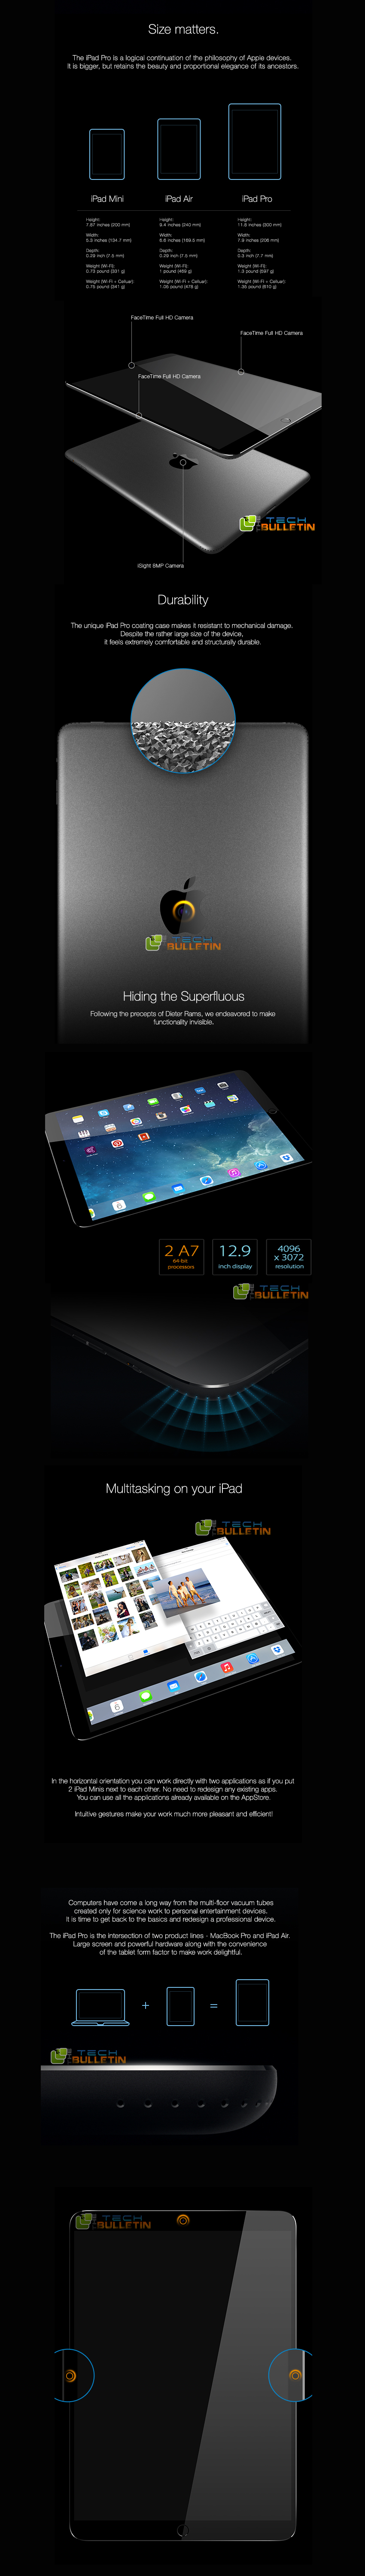 iPad 5-Prototype in the Possible Leak-See Picture and Specifications